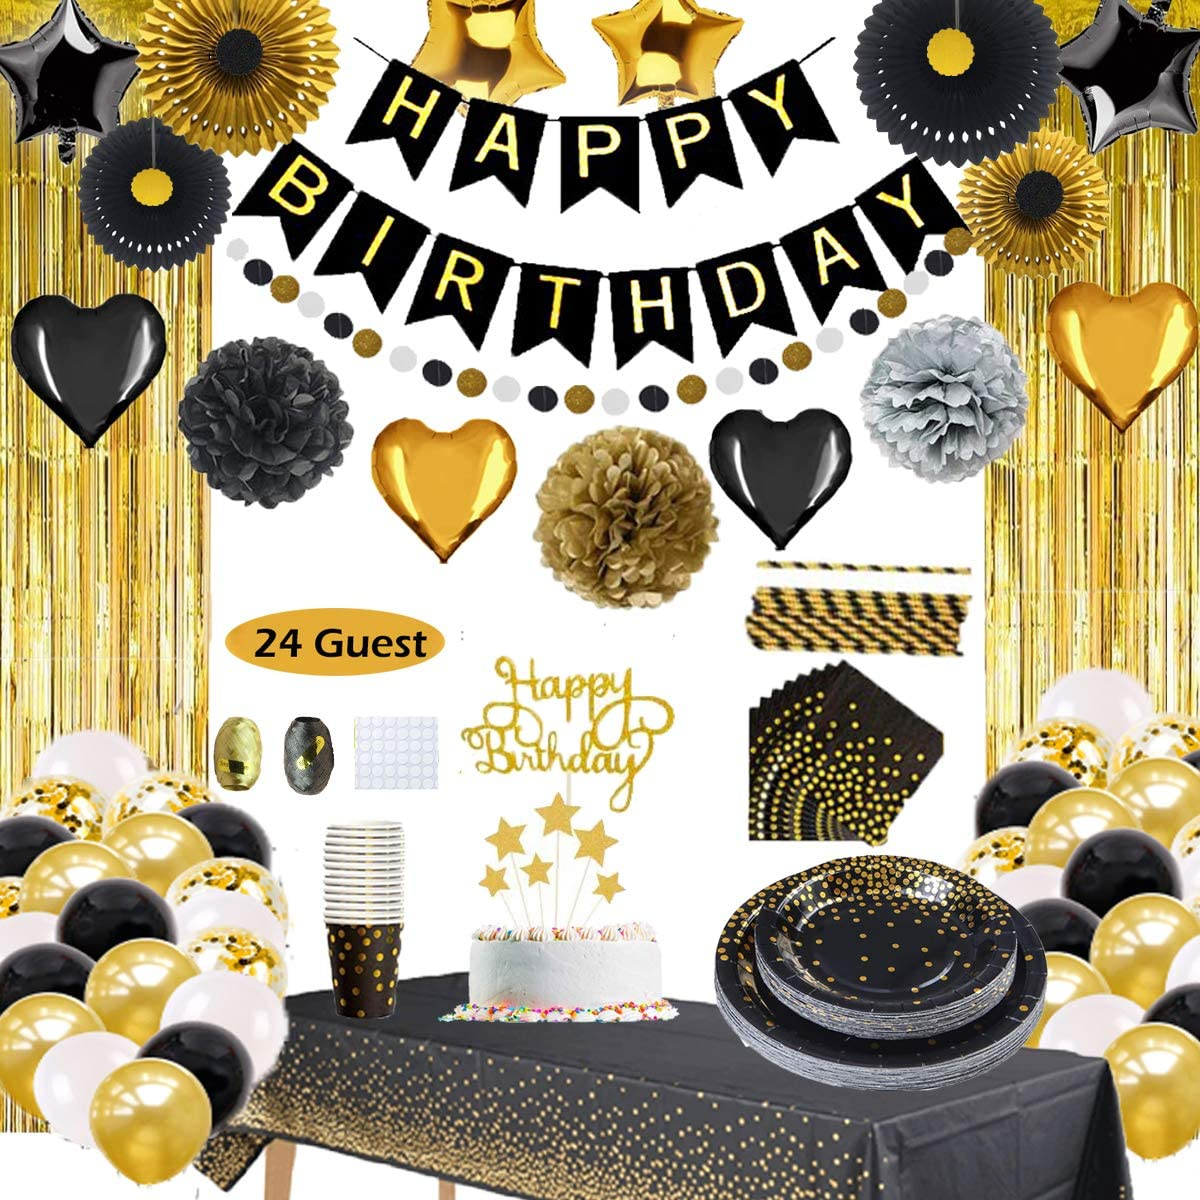 Black and Gold Party Decorations Supplies, Birthday Decorations For Men Women,Happy Birthday Banner, Curtains, Table Runner, Balloons, Plates, Cups, Tissue and more for 24 Guest by JSN Party